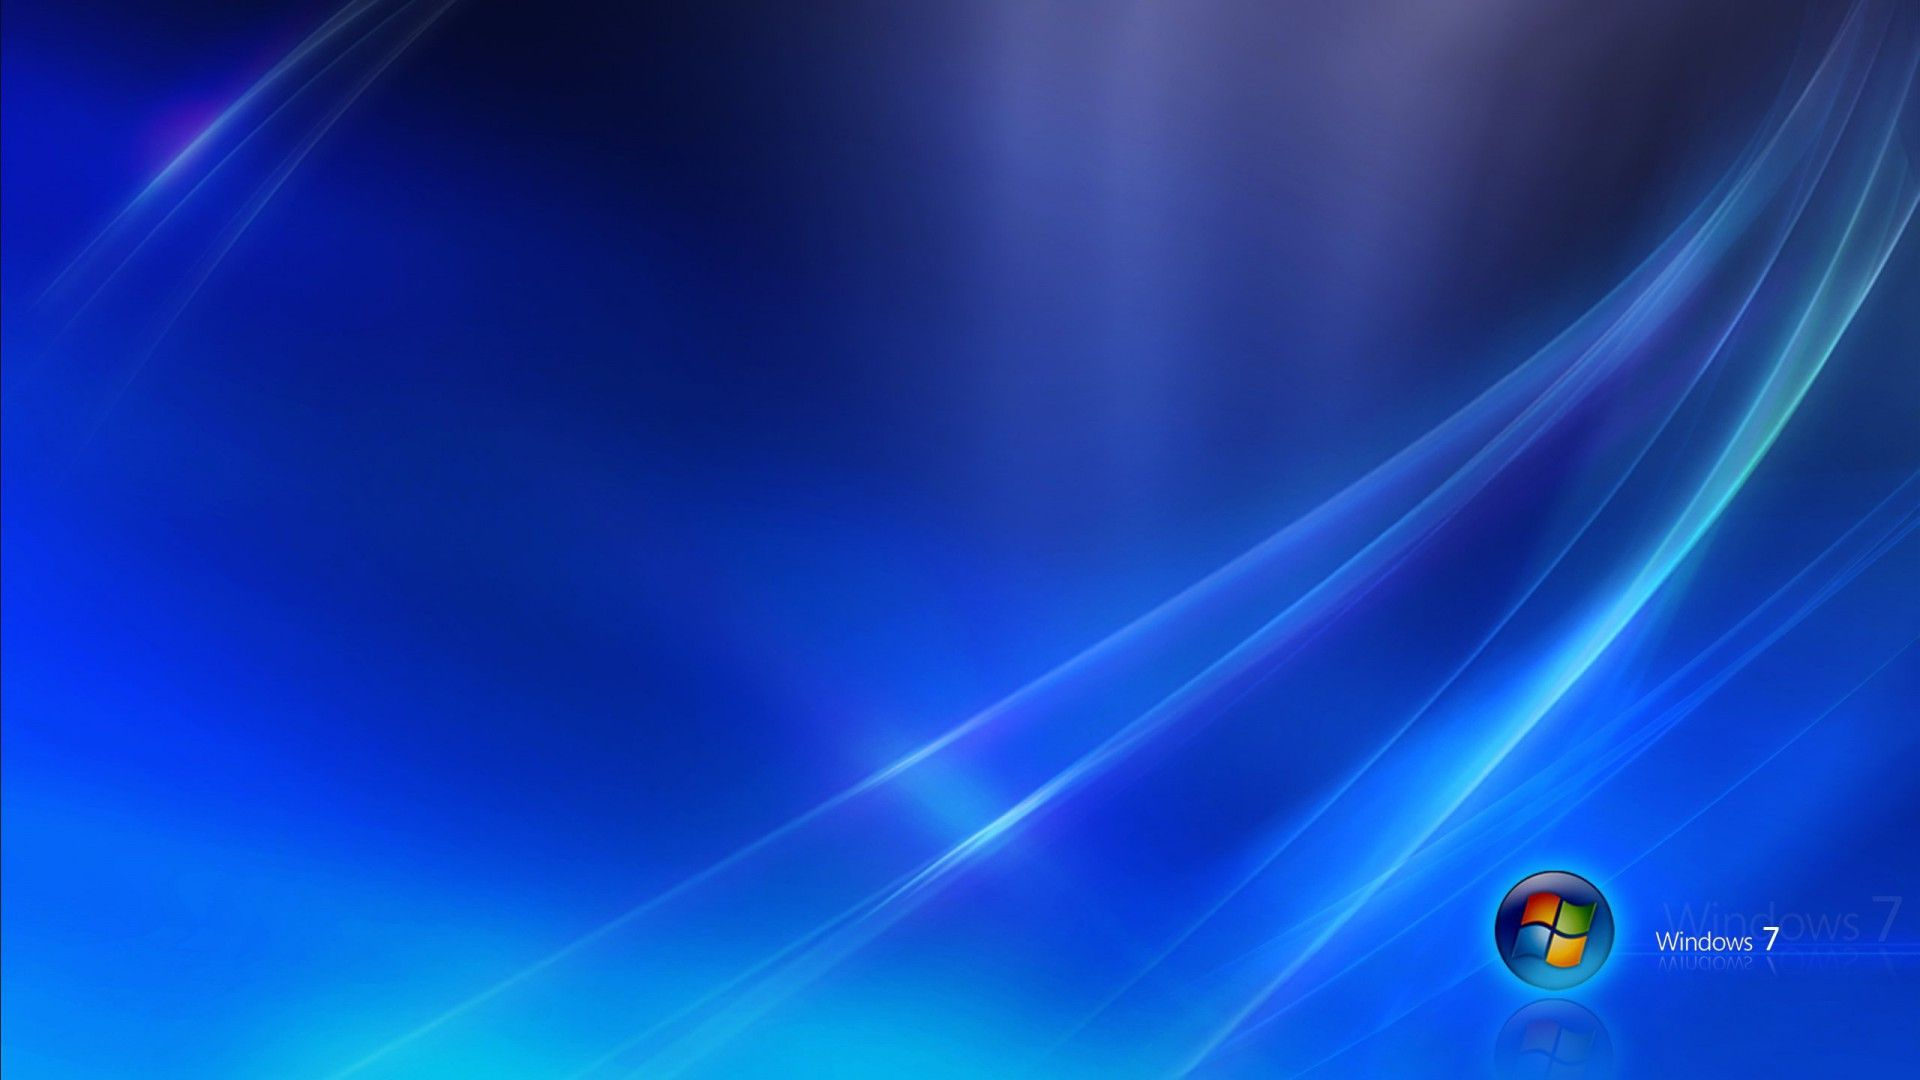 Windows Span desktop background free